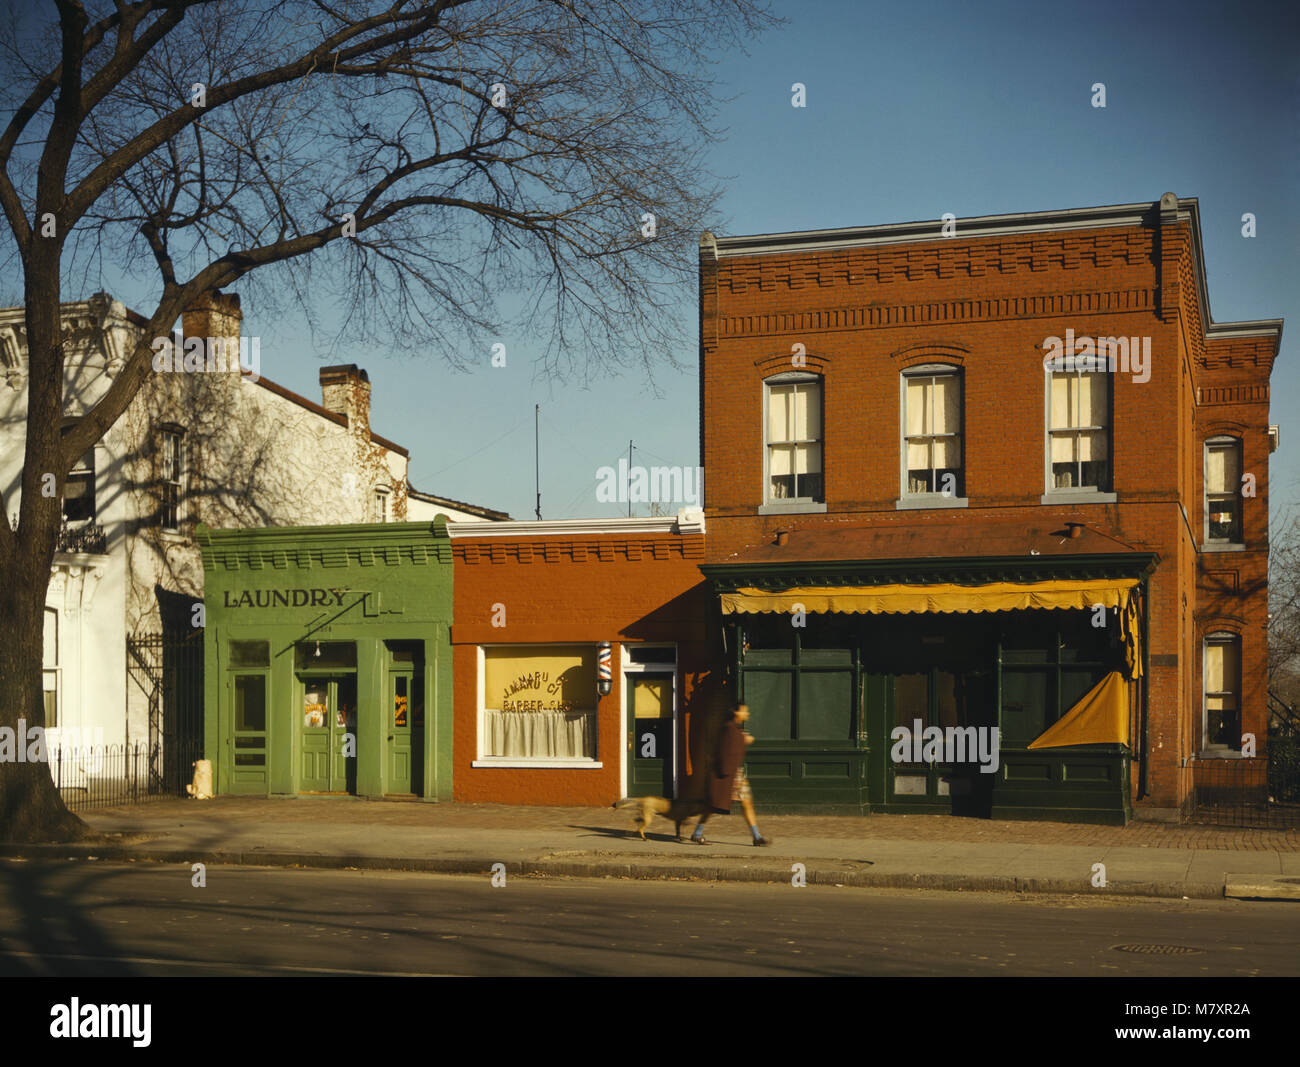 Laundry, Barbershop and Stores, Washington DC, USA, Louise Rosska for Farm Security Administration - Office of War - Stock Image